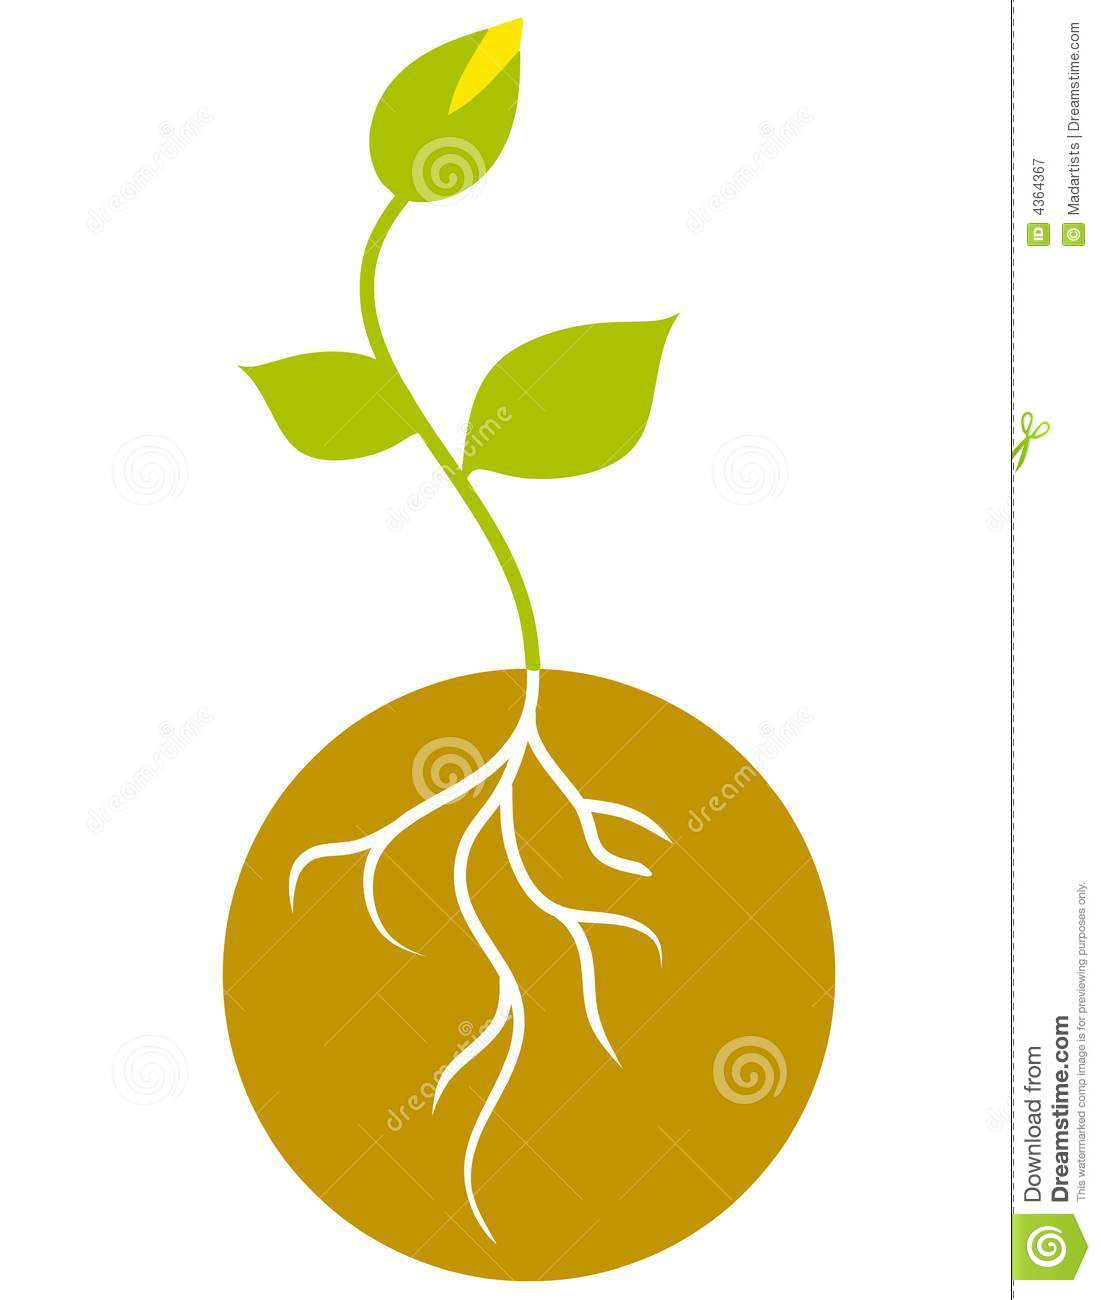 Seedling clipart. And roots